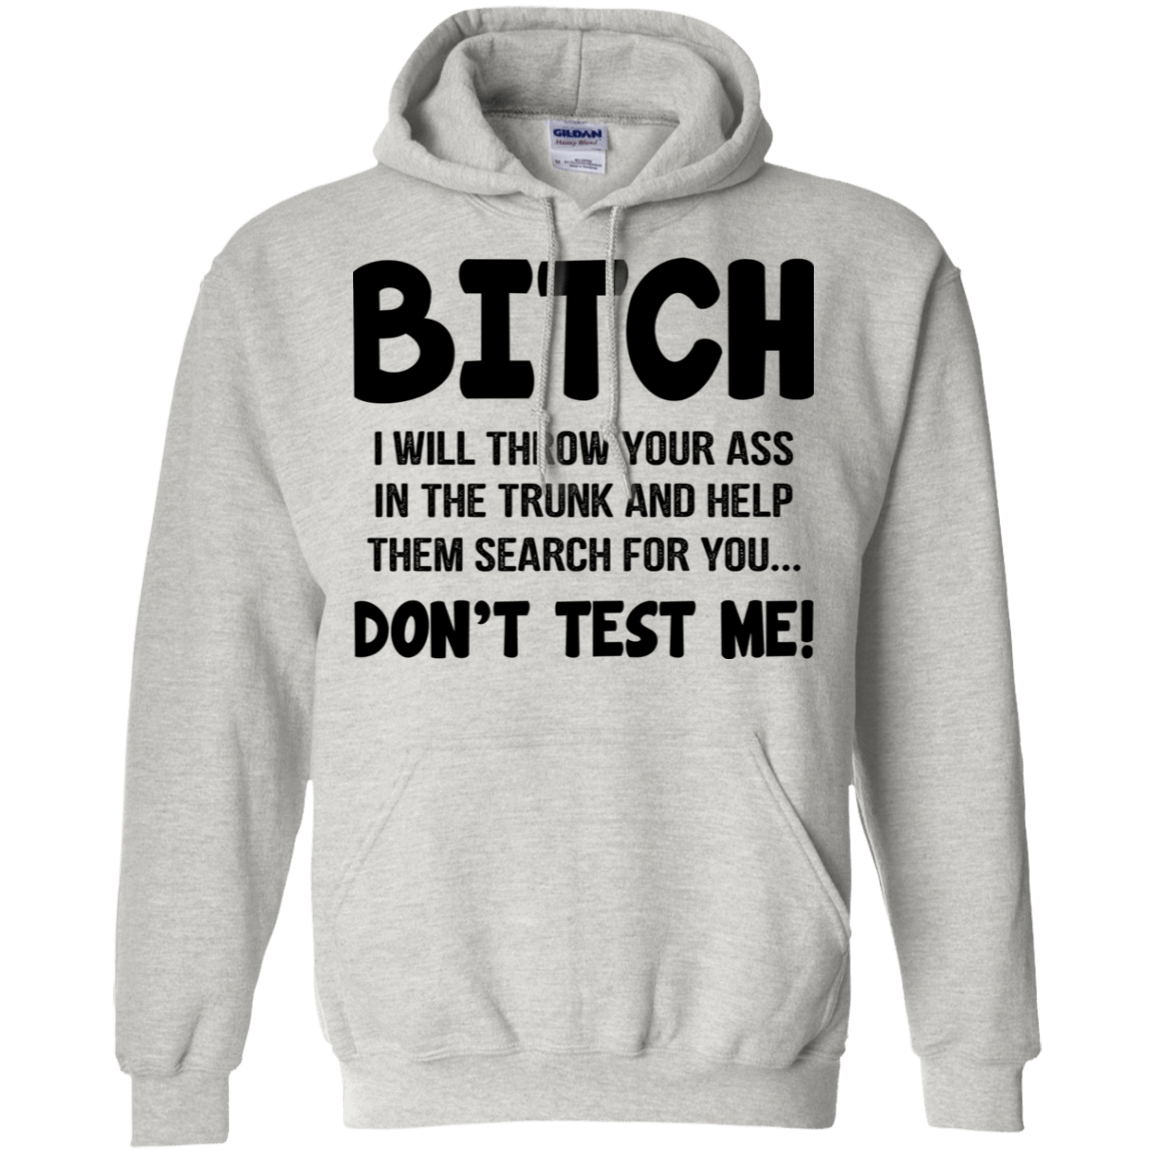 Bitch I Will Throw Your Ass In The Trunk And Help Them Search For You … Don't Test Me T-Shirts, Hoodie, Tank 541-4748-78811046-23071 - Tee Ript